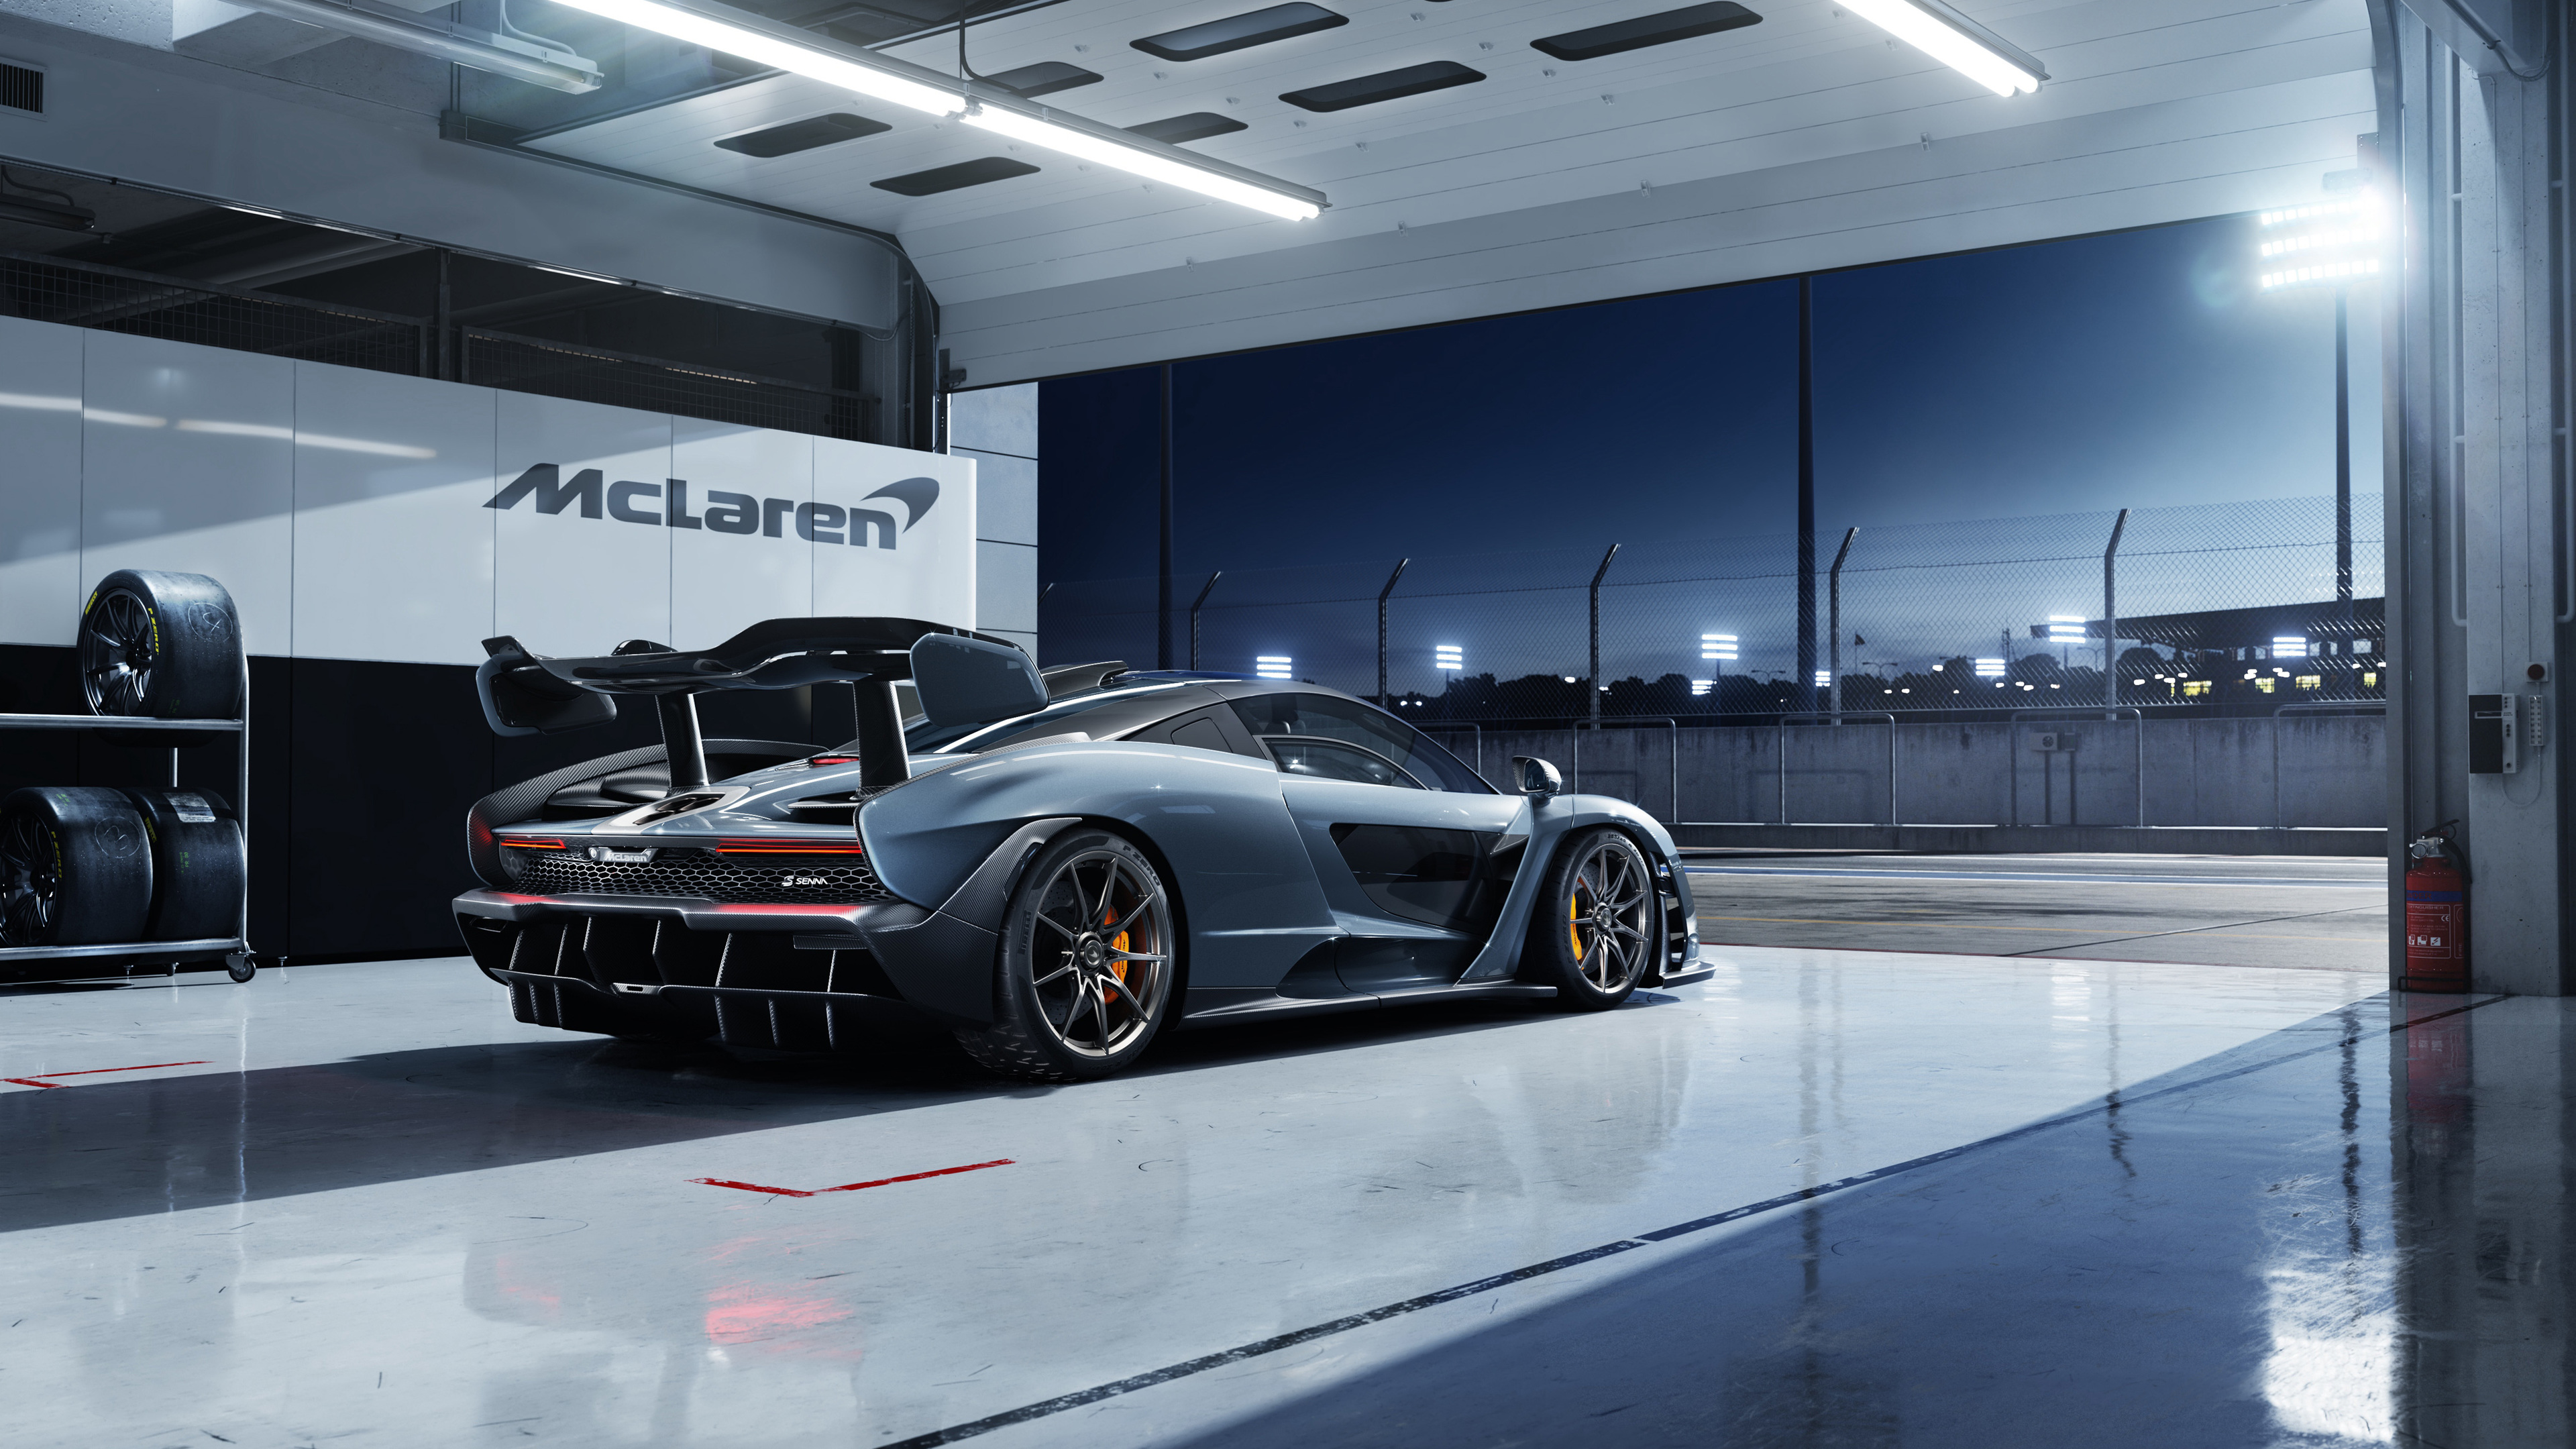 2018 mclaren senna hypercar 1539108661 - 2018 McLaren Senna Hypercar - mclaren wallpapers, mclaren senna wallpapers, hd-wallpapers, 4k-wallpapers, 2018 cars wallpapers